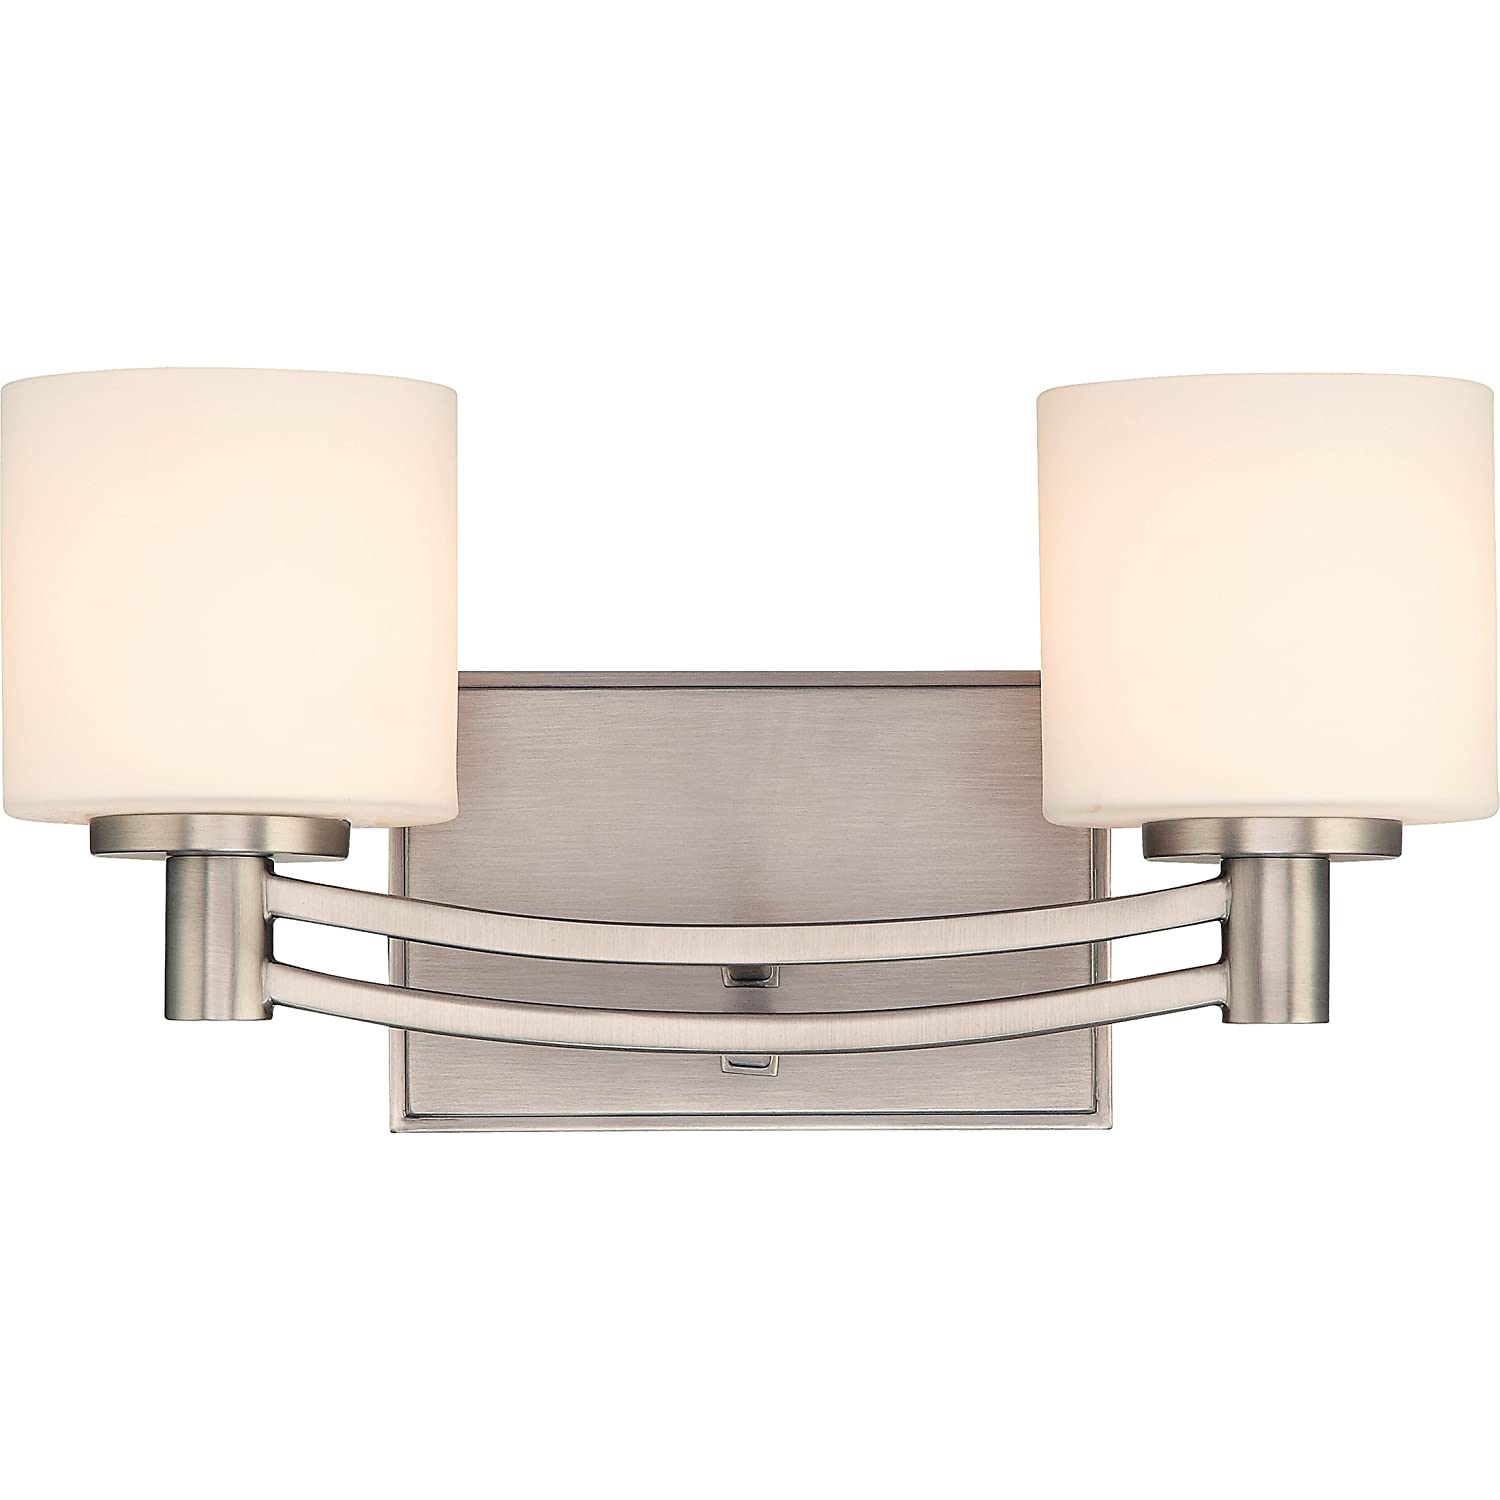 Quoizel PY8602AN Perry 2-Light Bath Fixture, Antique Nickel